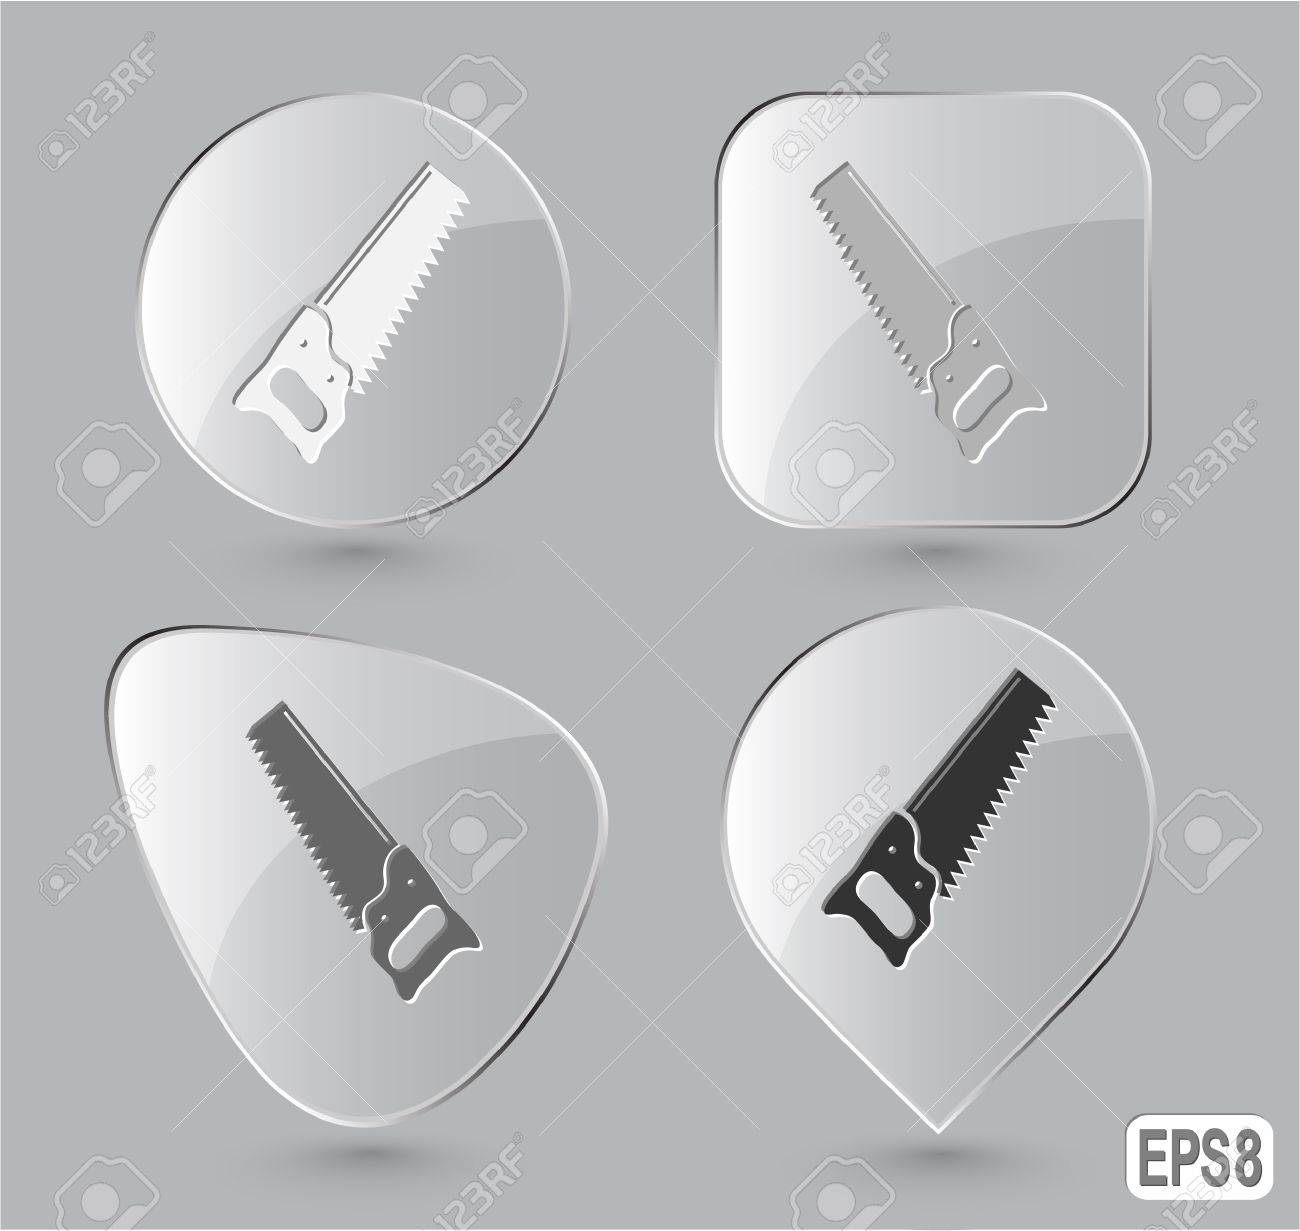 Hand saw. Glass buttons. Vector illustration. Stock Photo - 12920504